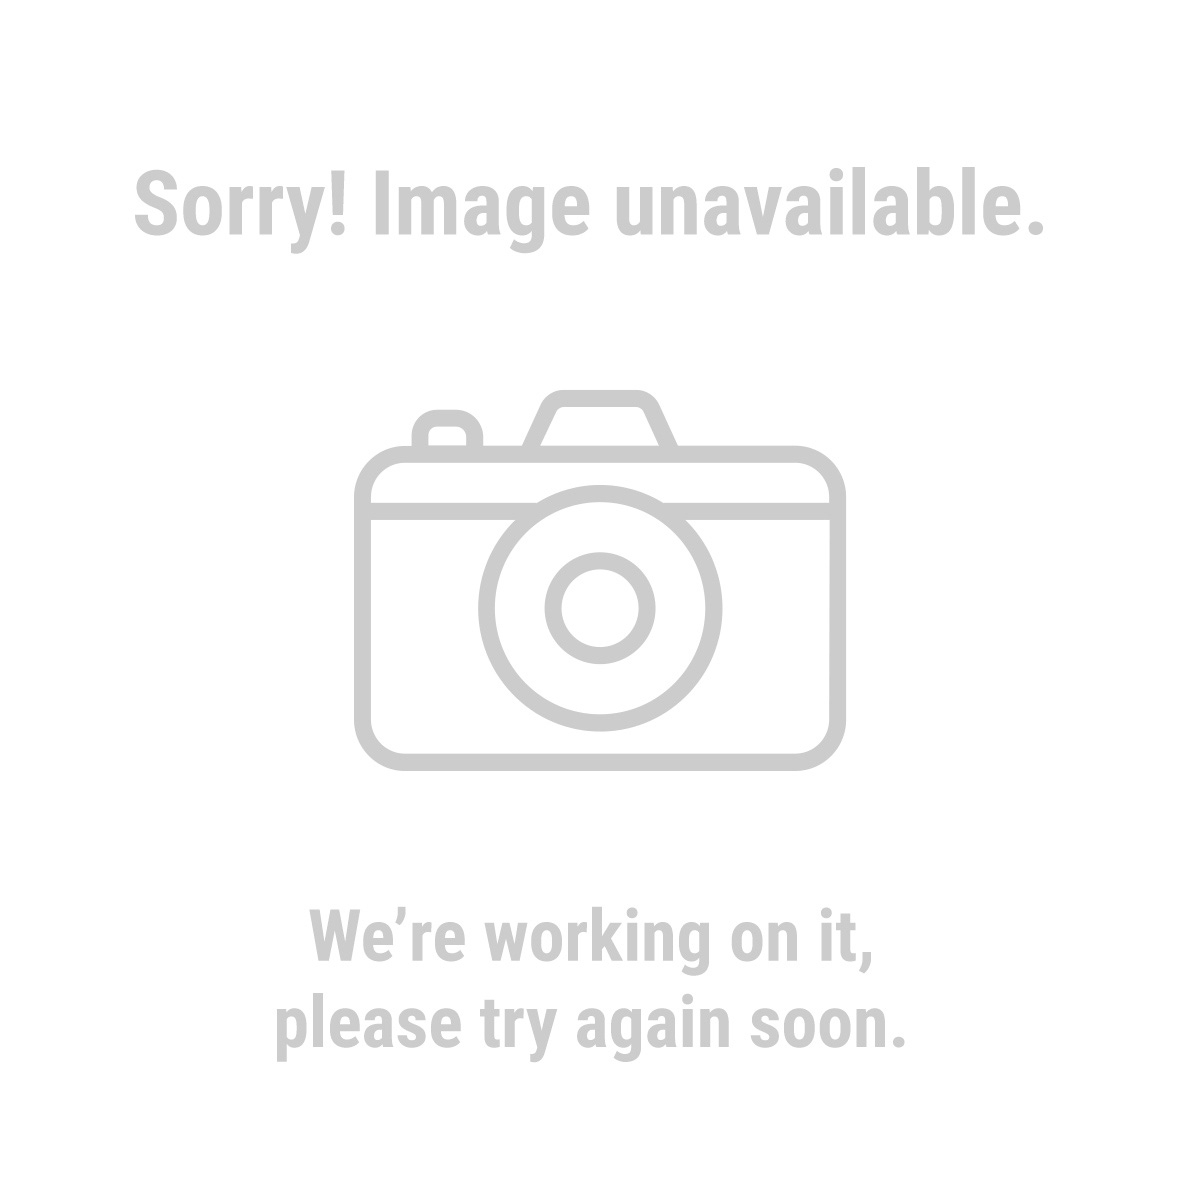 Pittsburgh Automotive 97706 Master Fuel Injection Pressure Test Kit